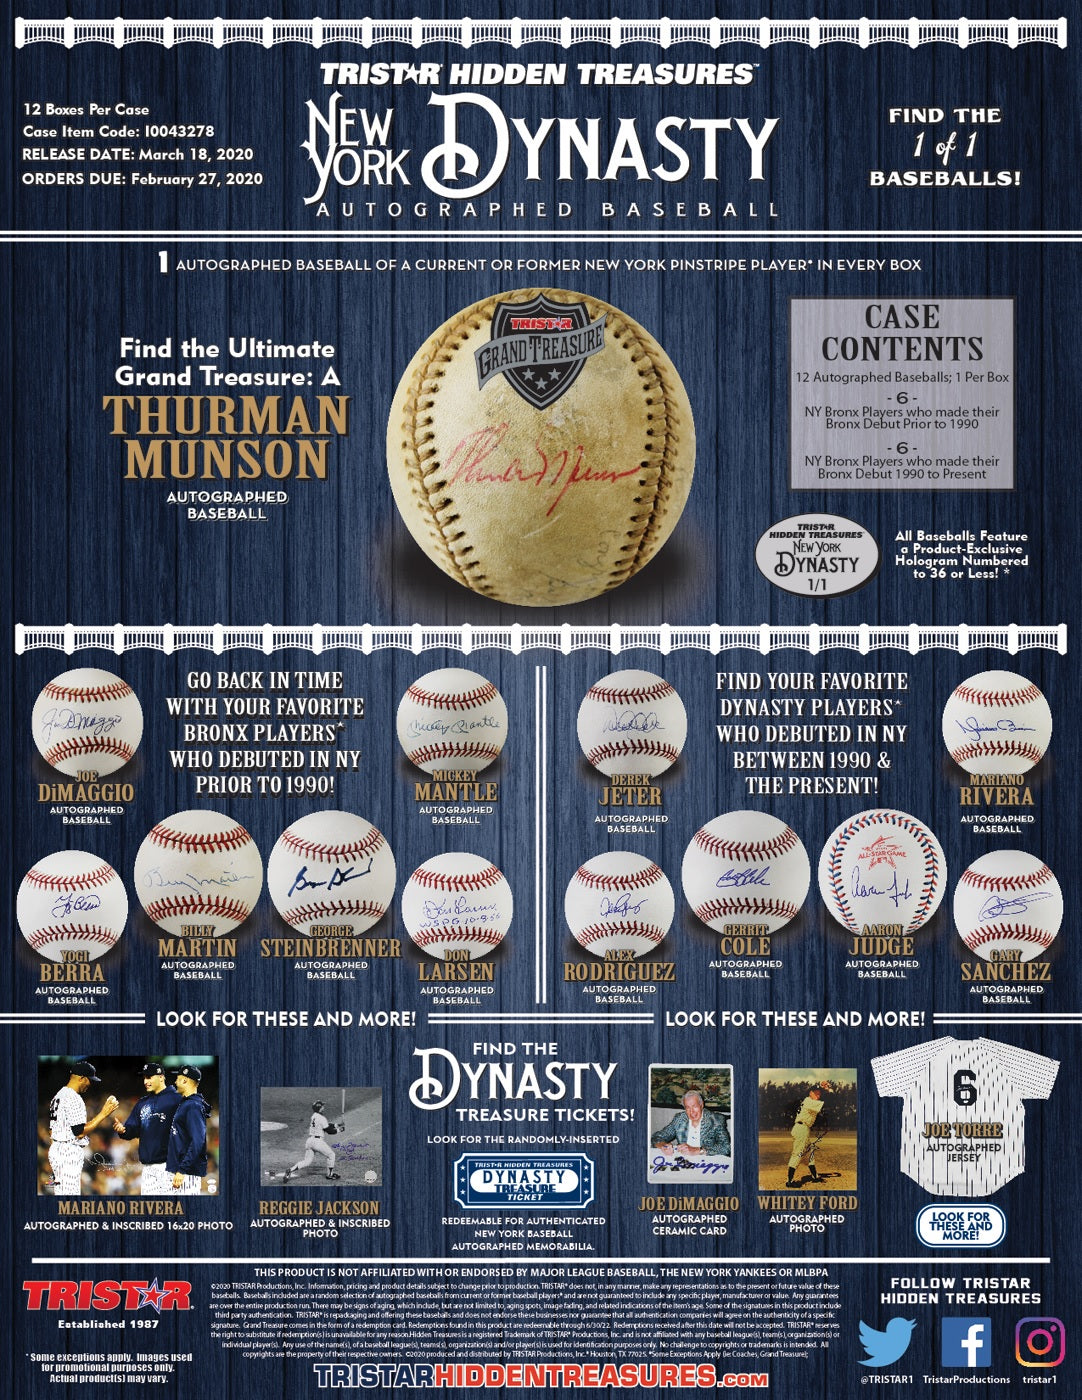 2020 Tristar HT Auto Baseball: New York Yankees Dynasty Edition - Factory Sealed